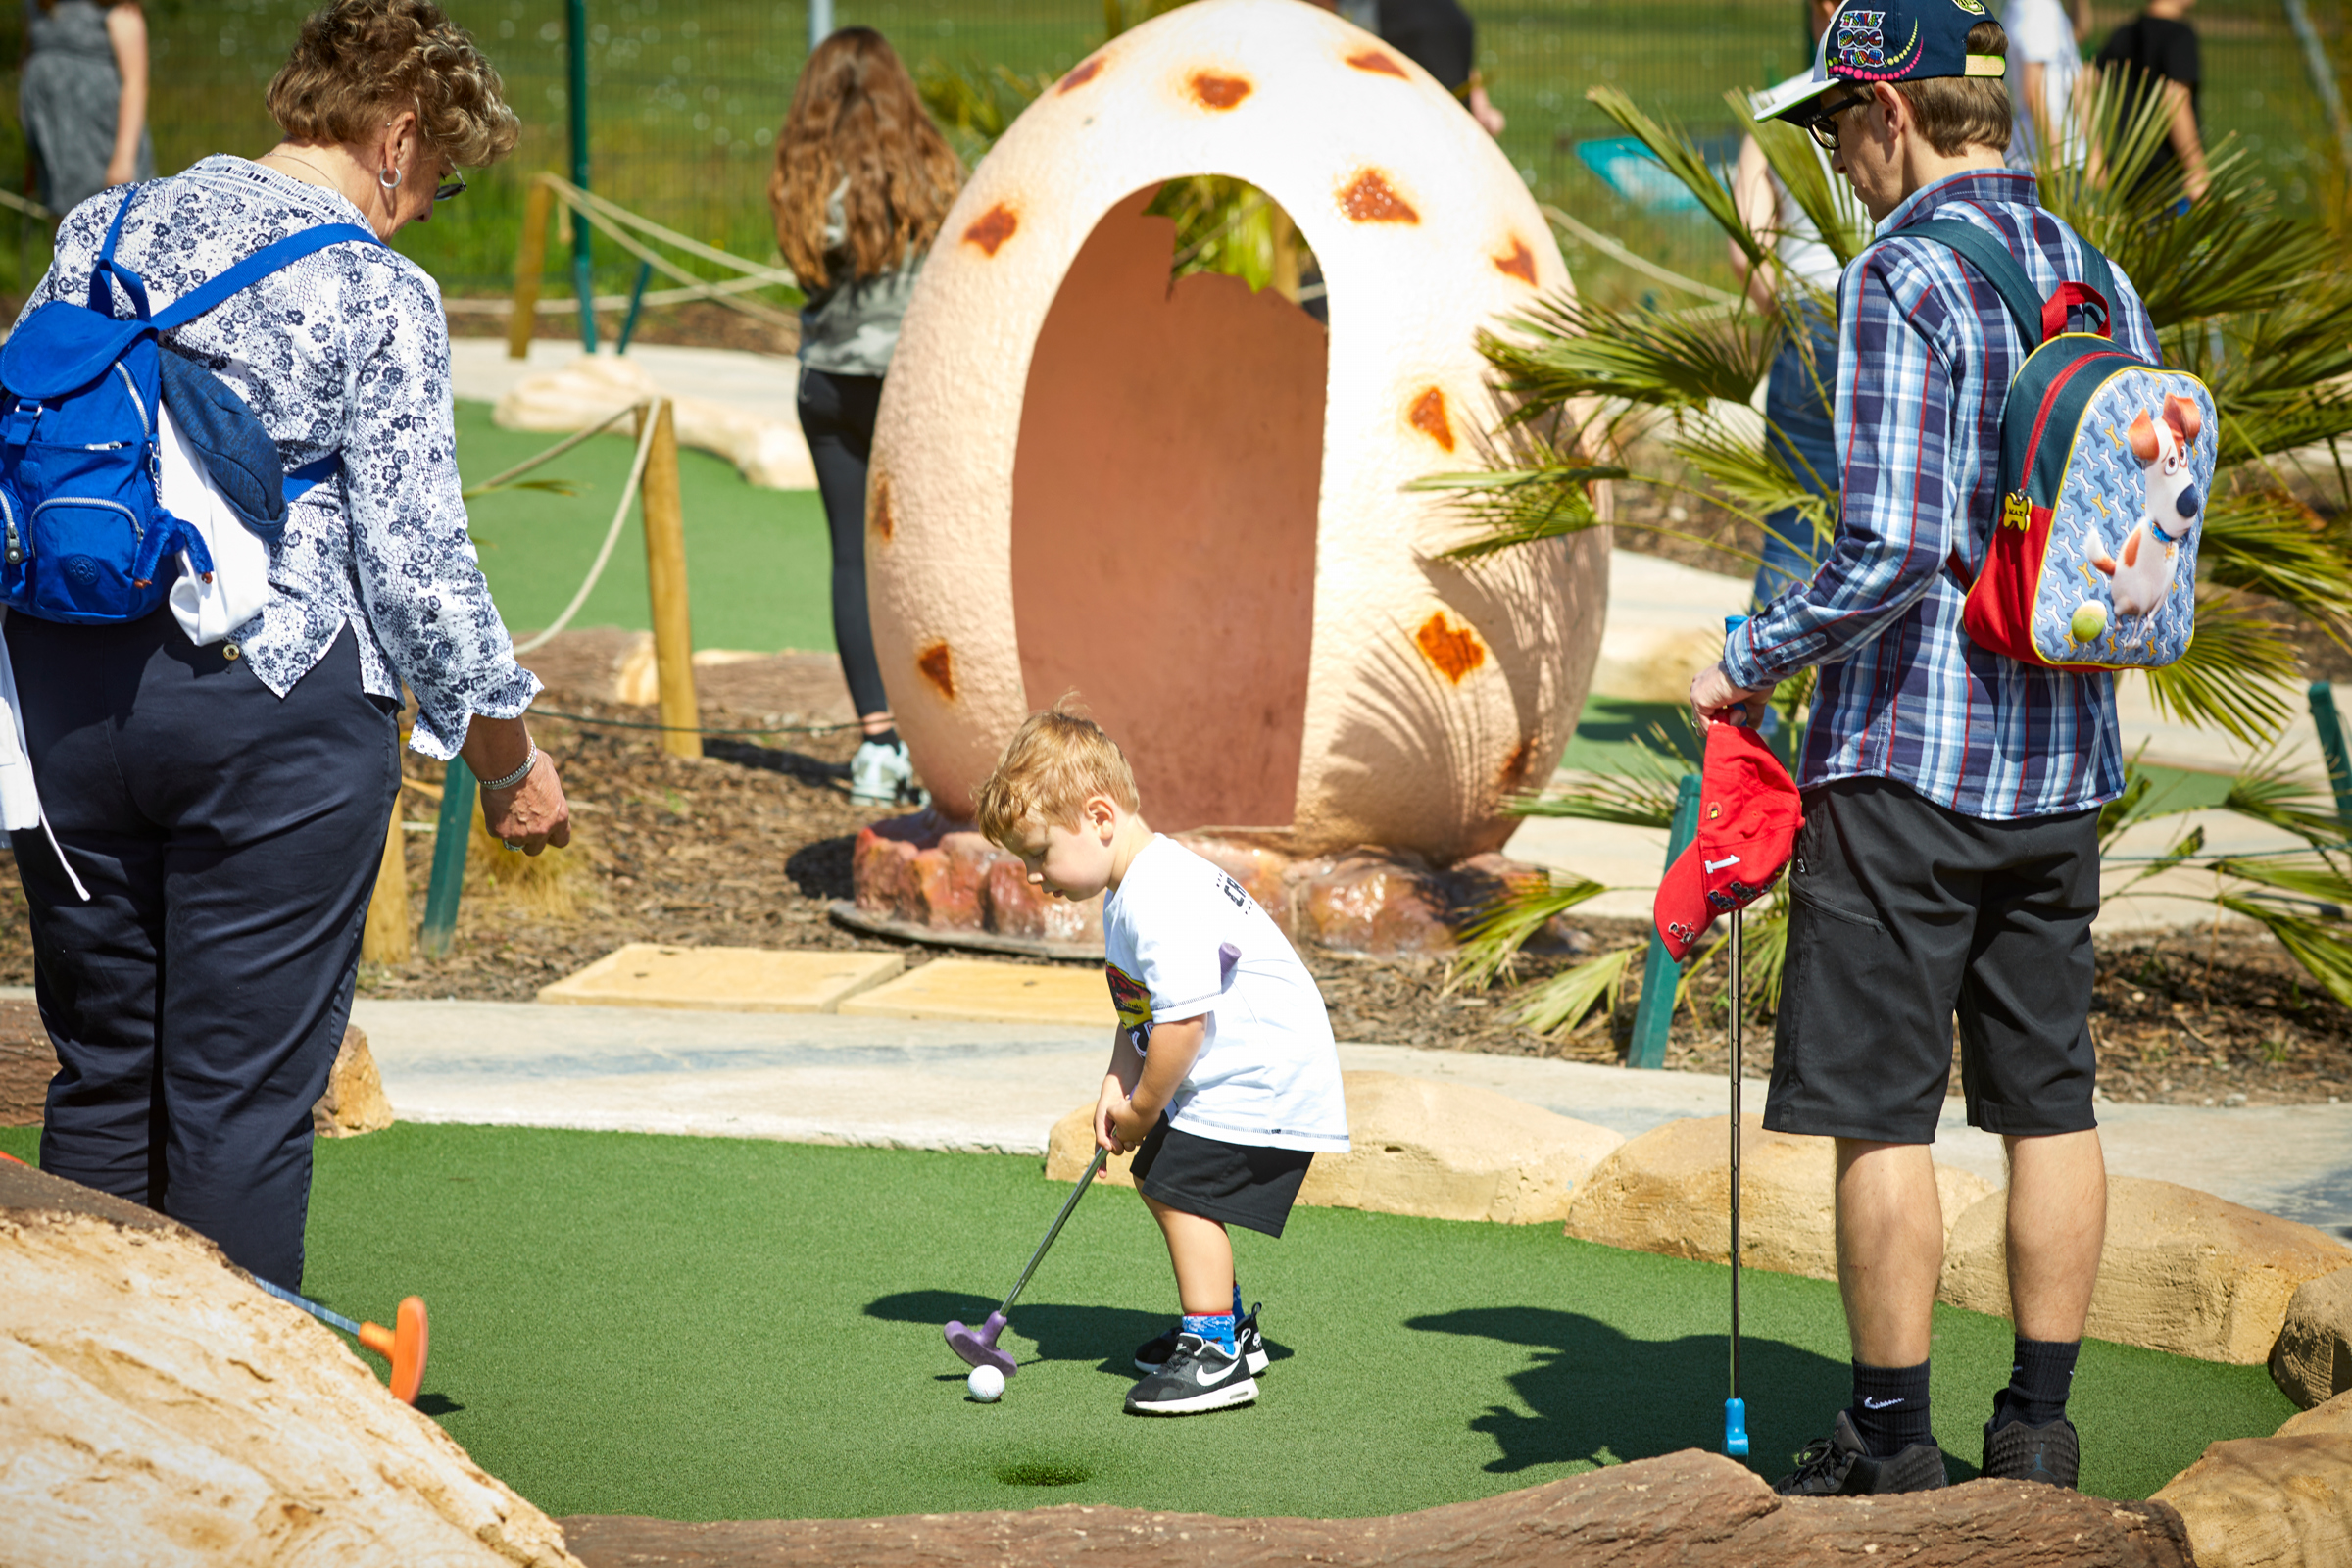 Kids can go FREE at Dino Falls Adventure Golf this April